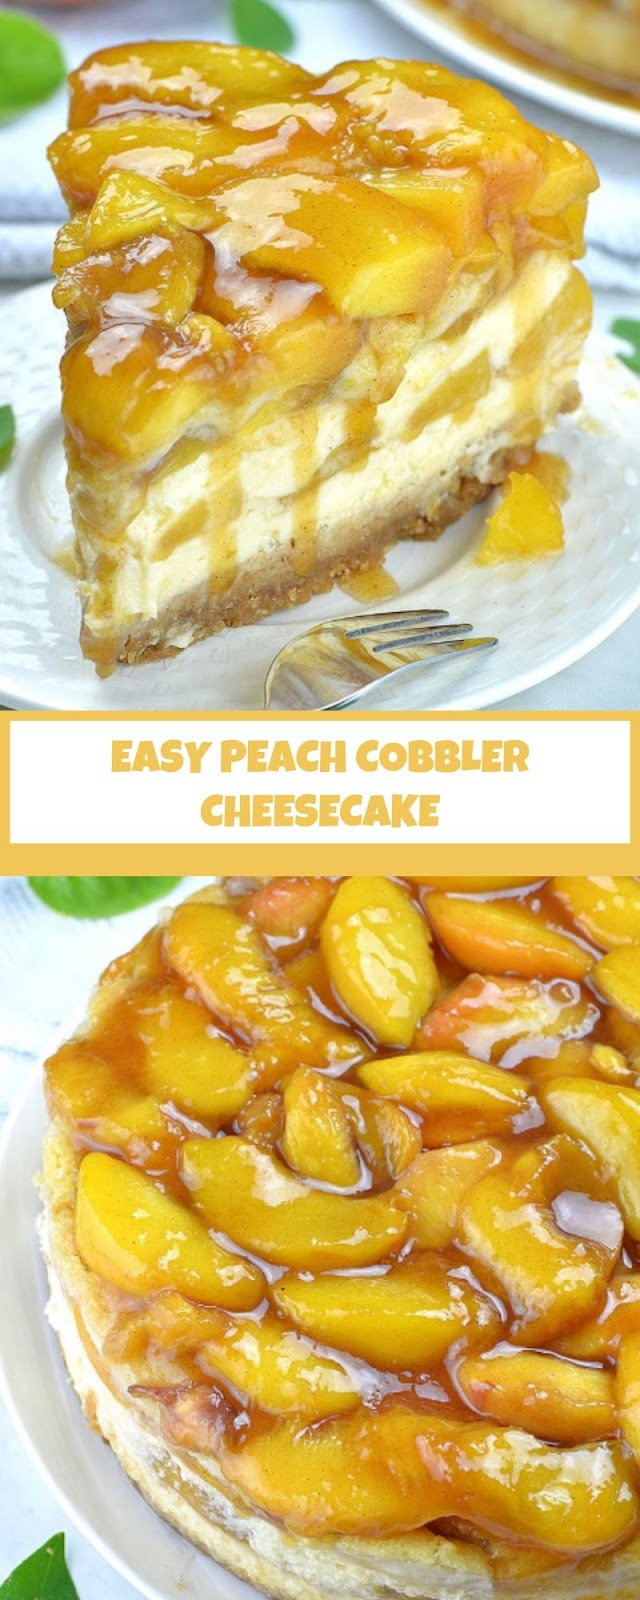 EASY PEACH COBBLER CHEESECAKE